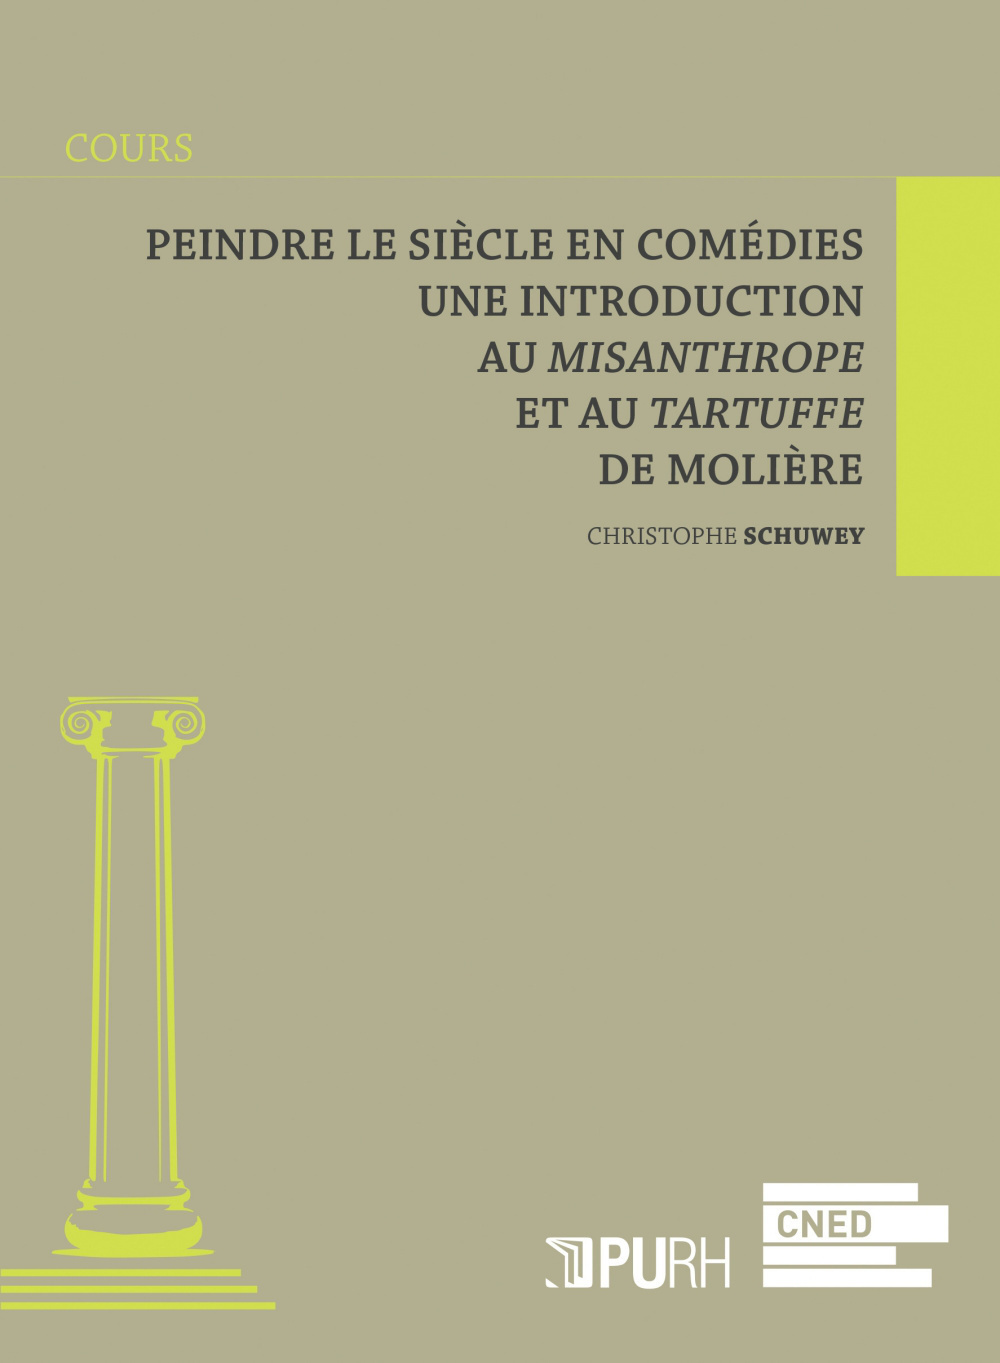 PEINDRE LE SIECLE EN COMEDIES. UNE INTRODUCTION AU MISANTHROPE ET AU